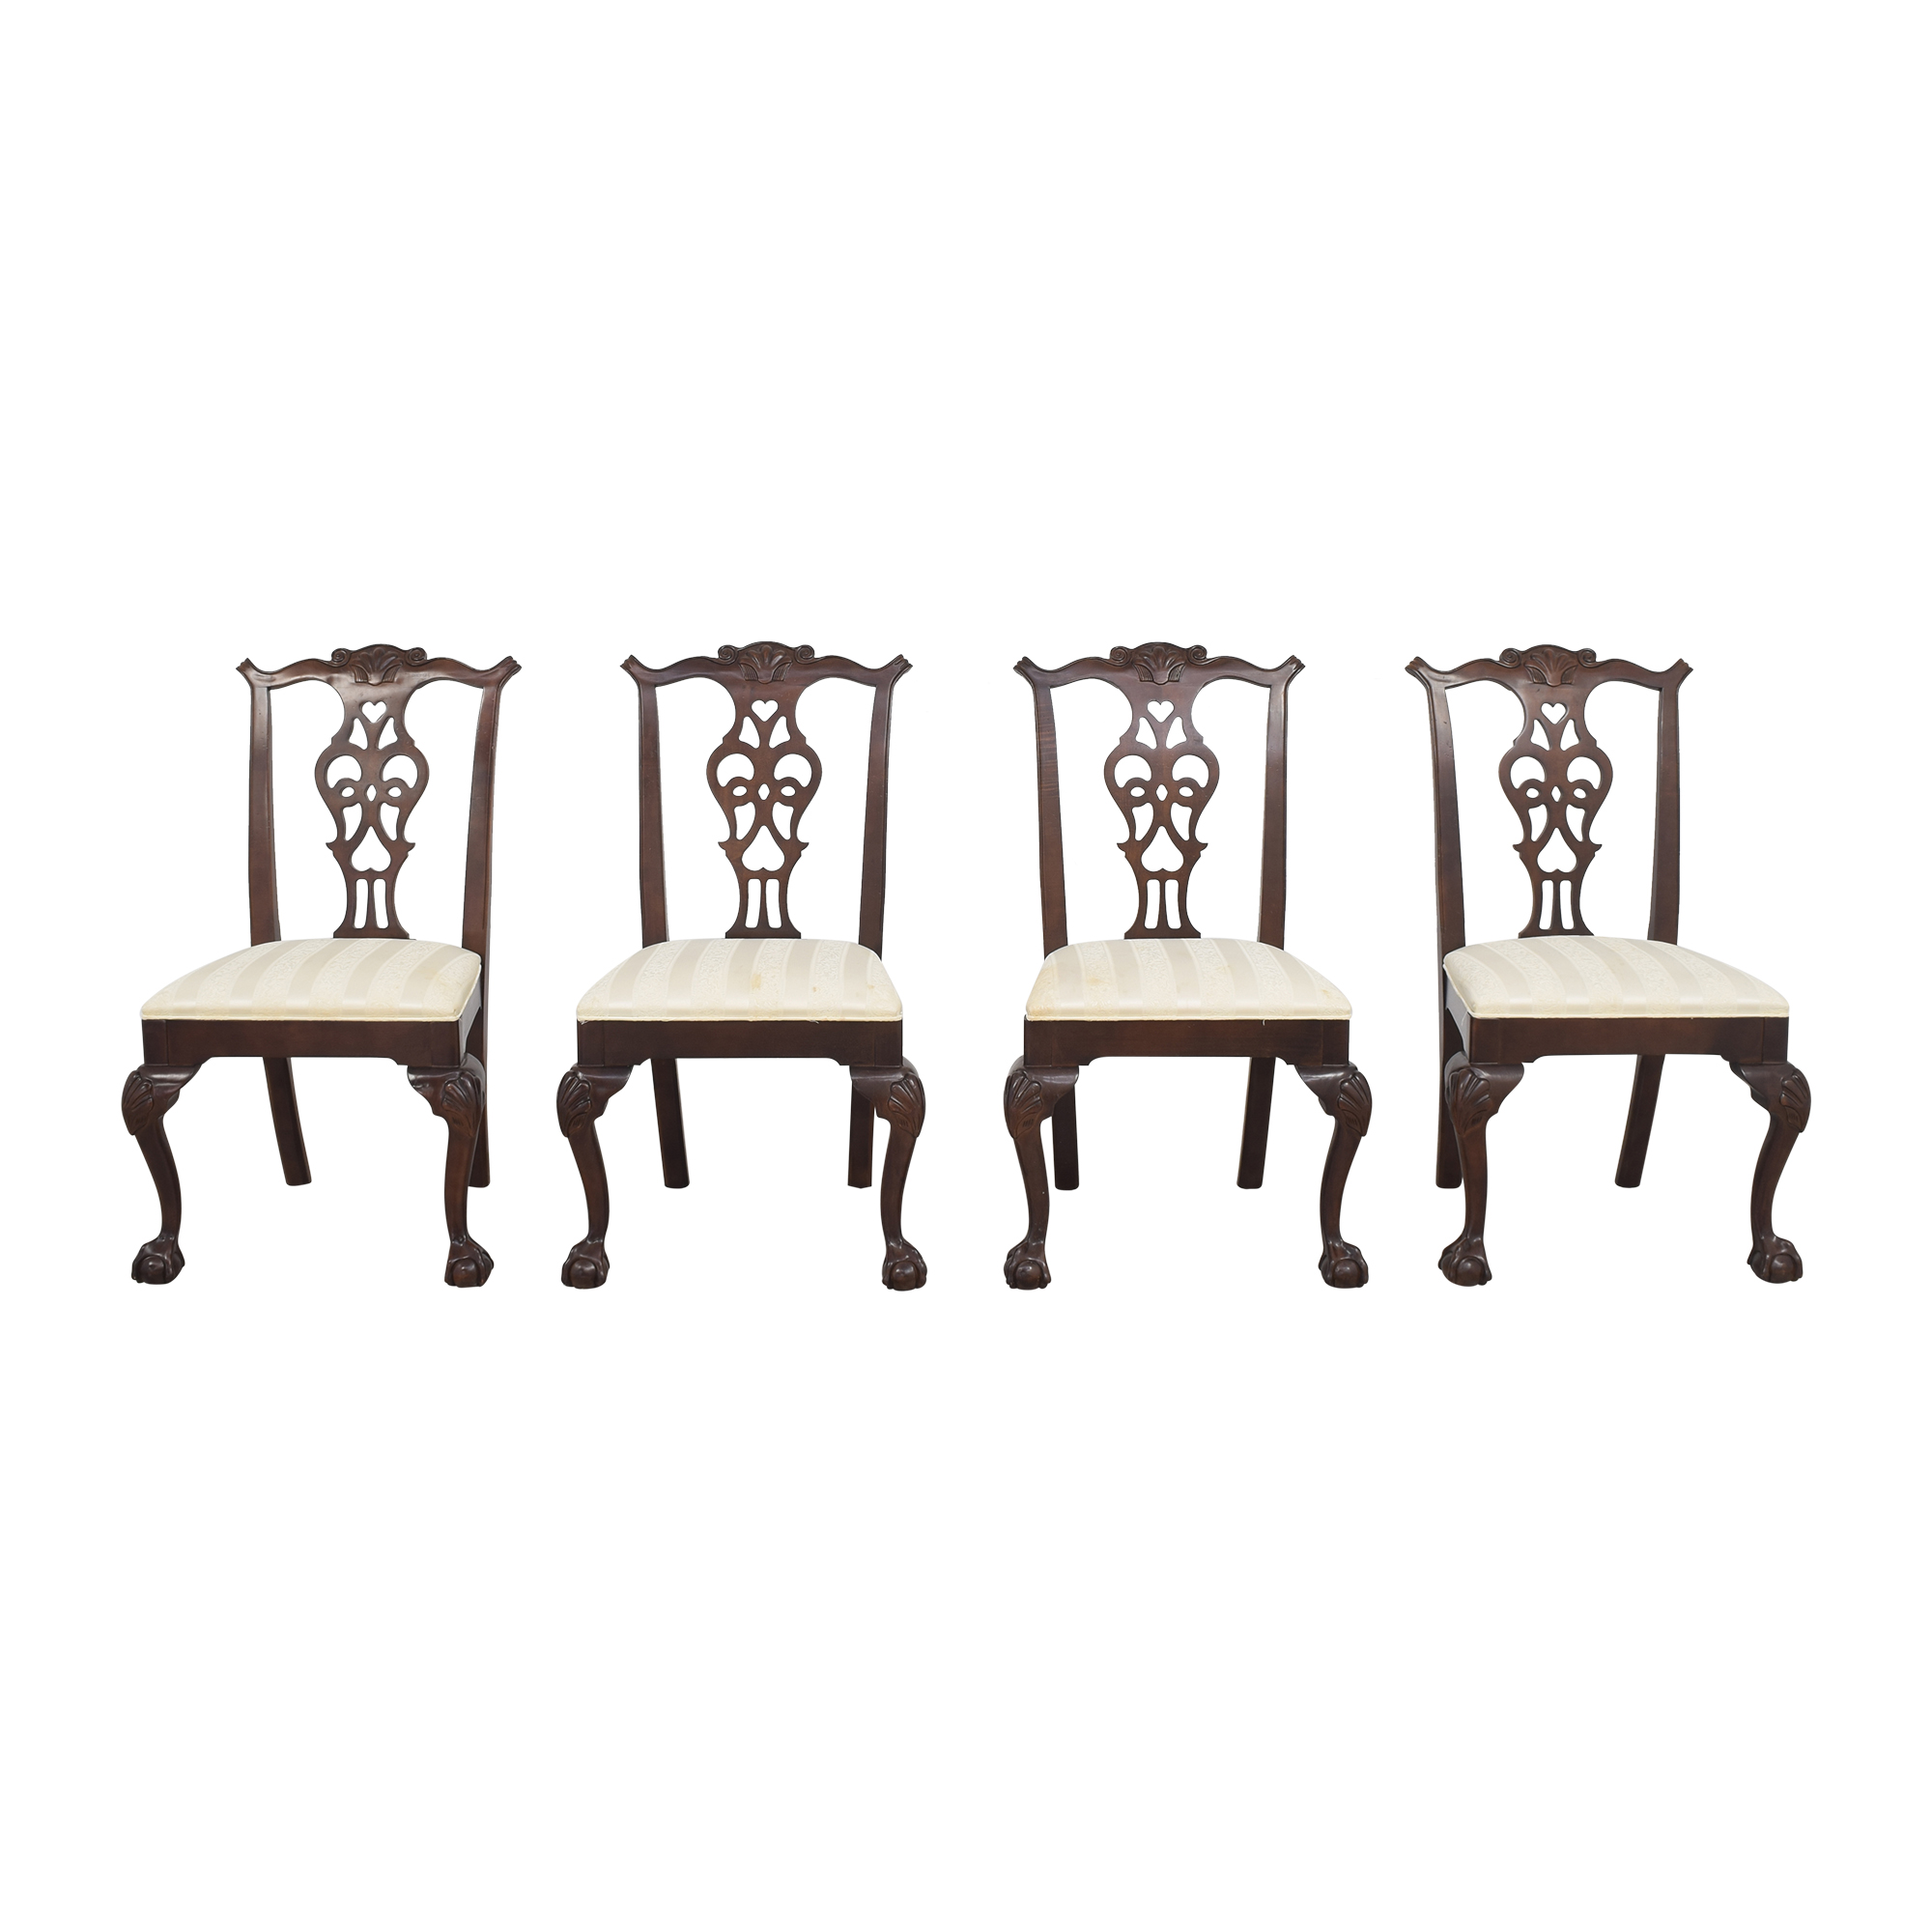 Century Furniture Clawfoot Style Dining Chairs / Chairs